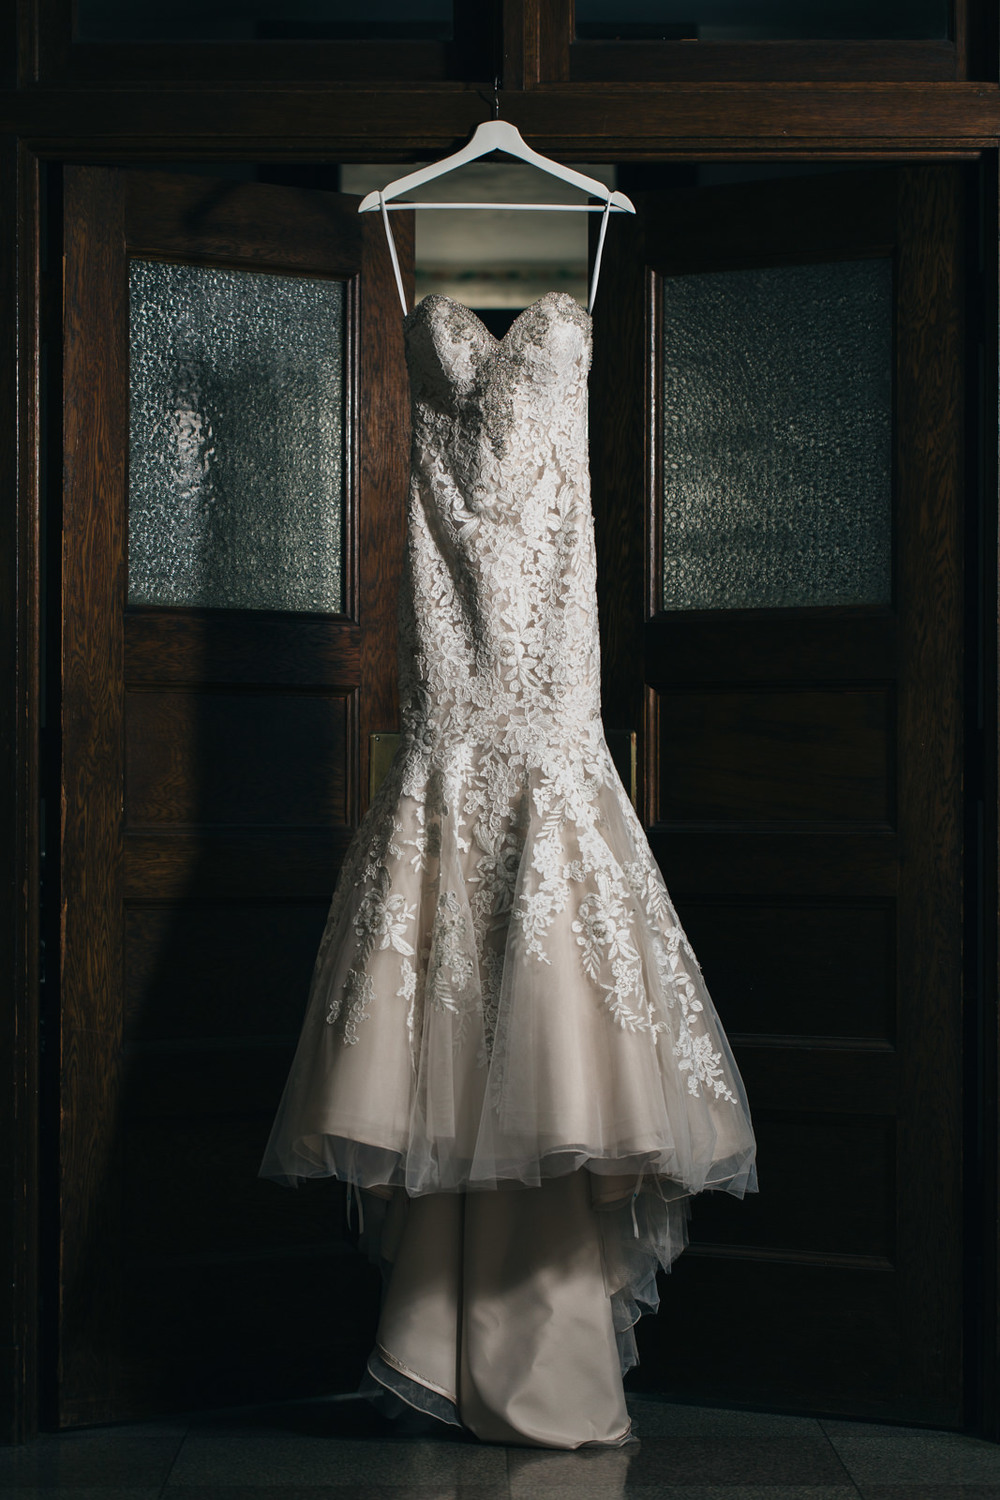 Beautiful vintage lace wedding dress hanging at Nazareth Hall.